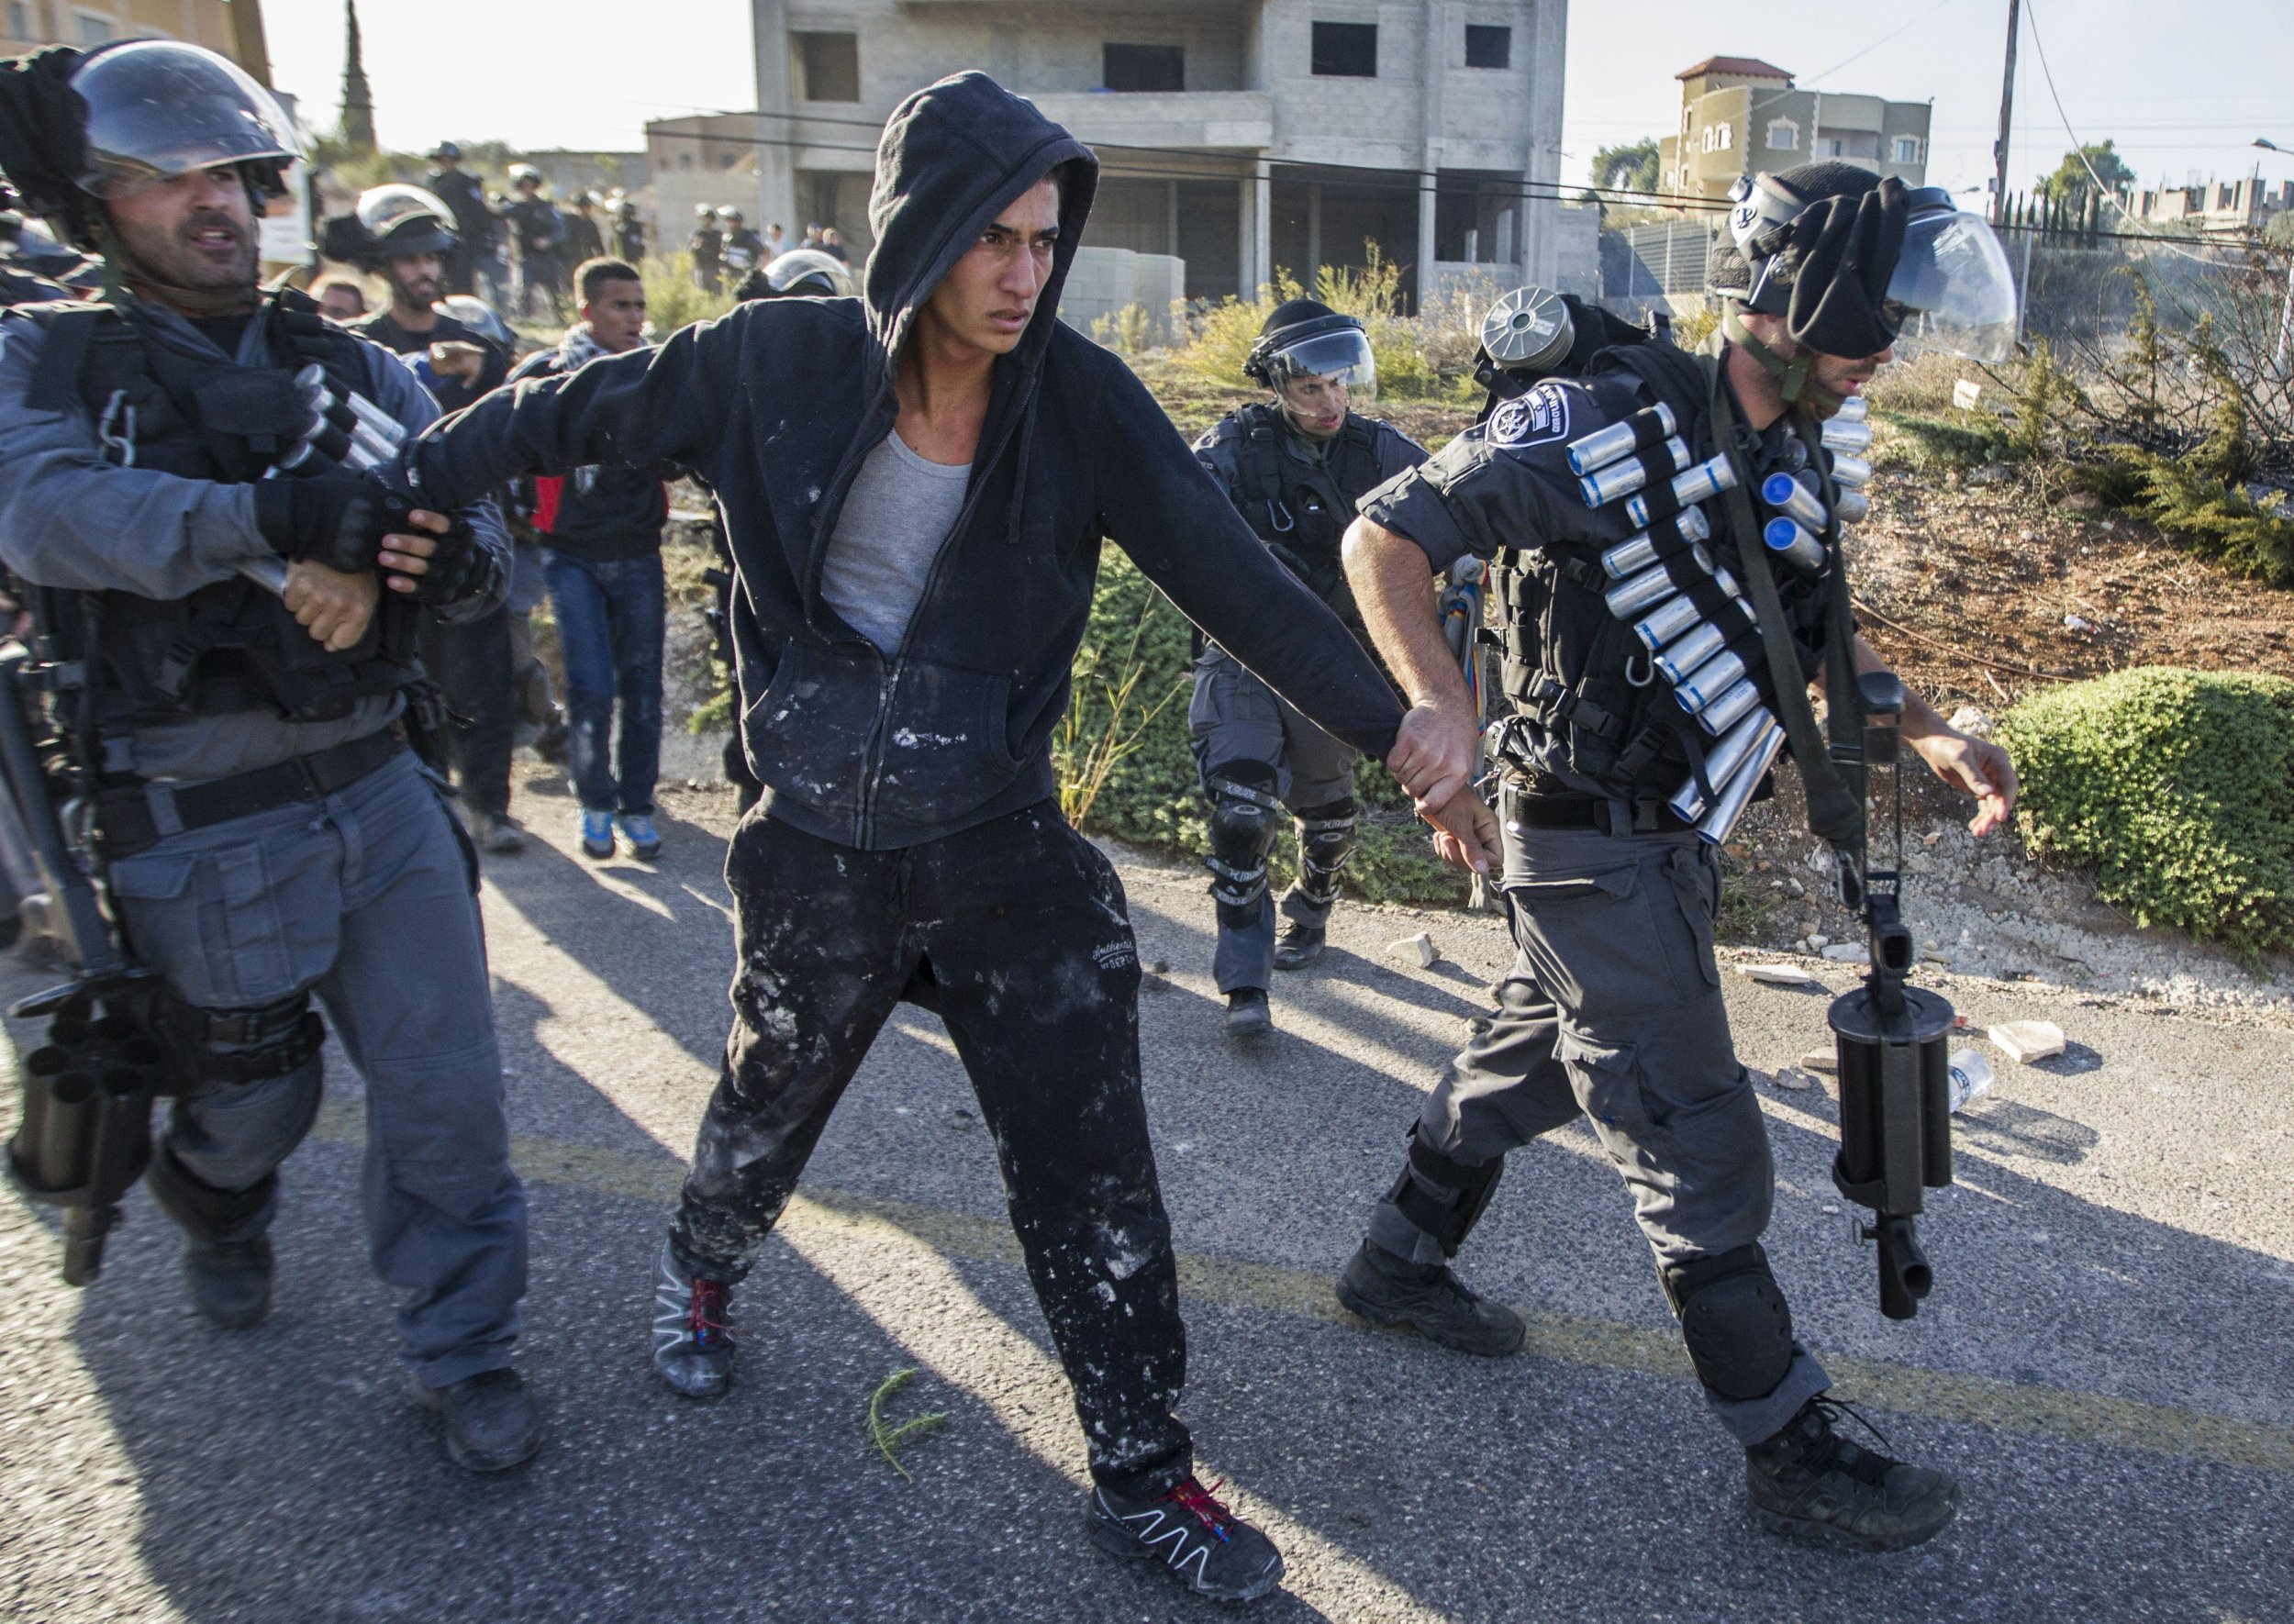 Israeli police detain an Arab-Israeli youth in Kafr Kanna, Israel.